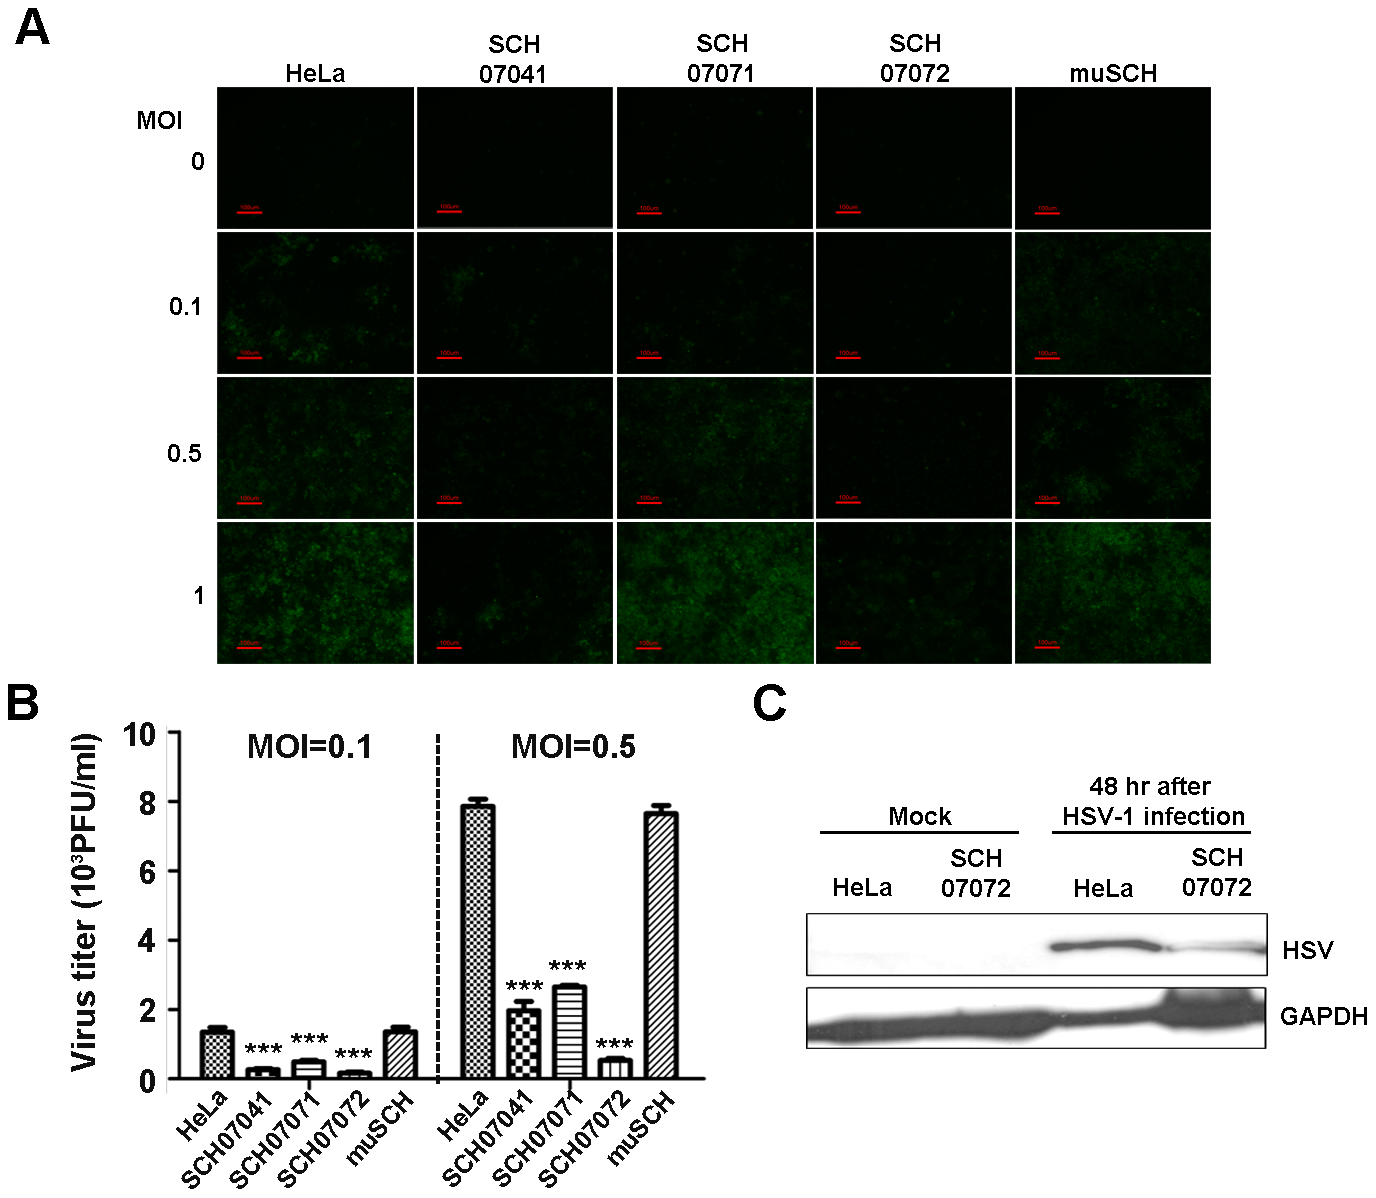 3D8 scFv expression in transgenic HeLa cells confers resistance to HSV infection.